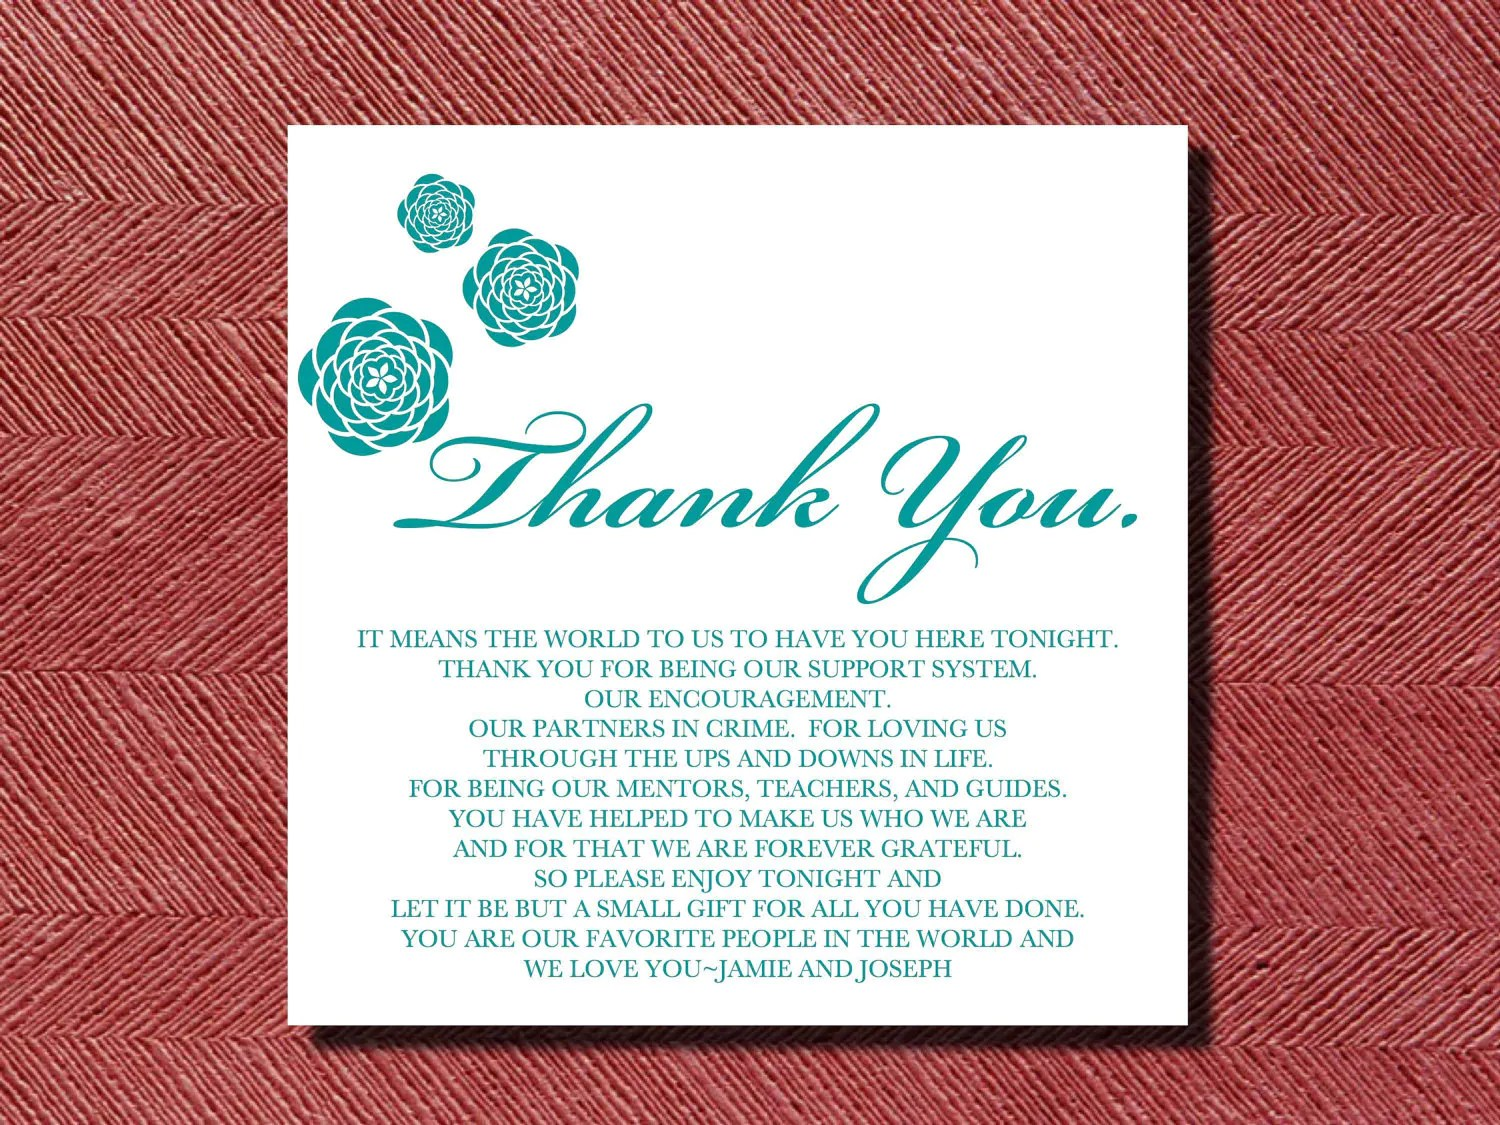 wedding thank you place setting card diy thank you cards wedding Request a custom order and have something made just for you